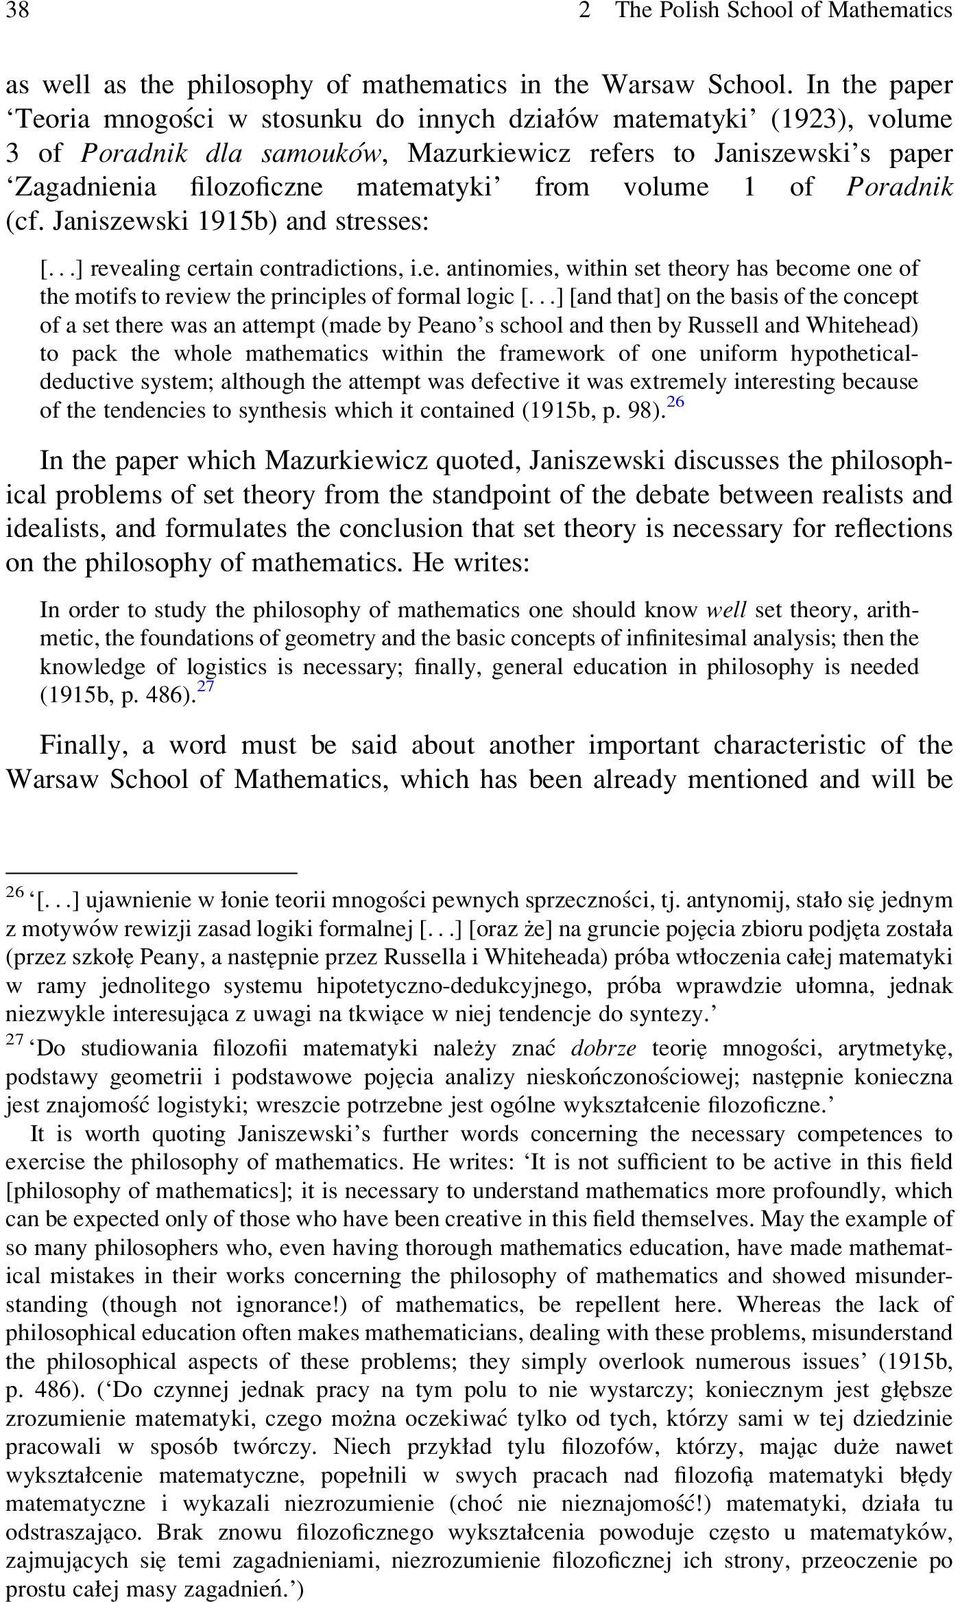 volume 1 of Poradnik (cf. Janiszewski 1915b) and stresses: [...] revealing certain contradictions, i.e. antinomies, within set theory has become one of the motifs to review the principles of formal logic [.